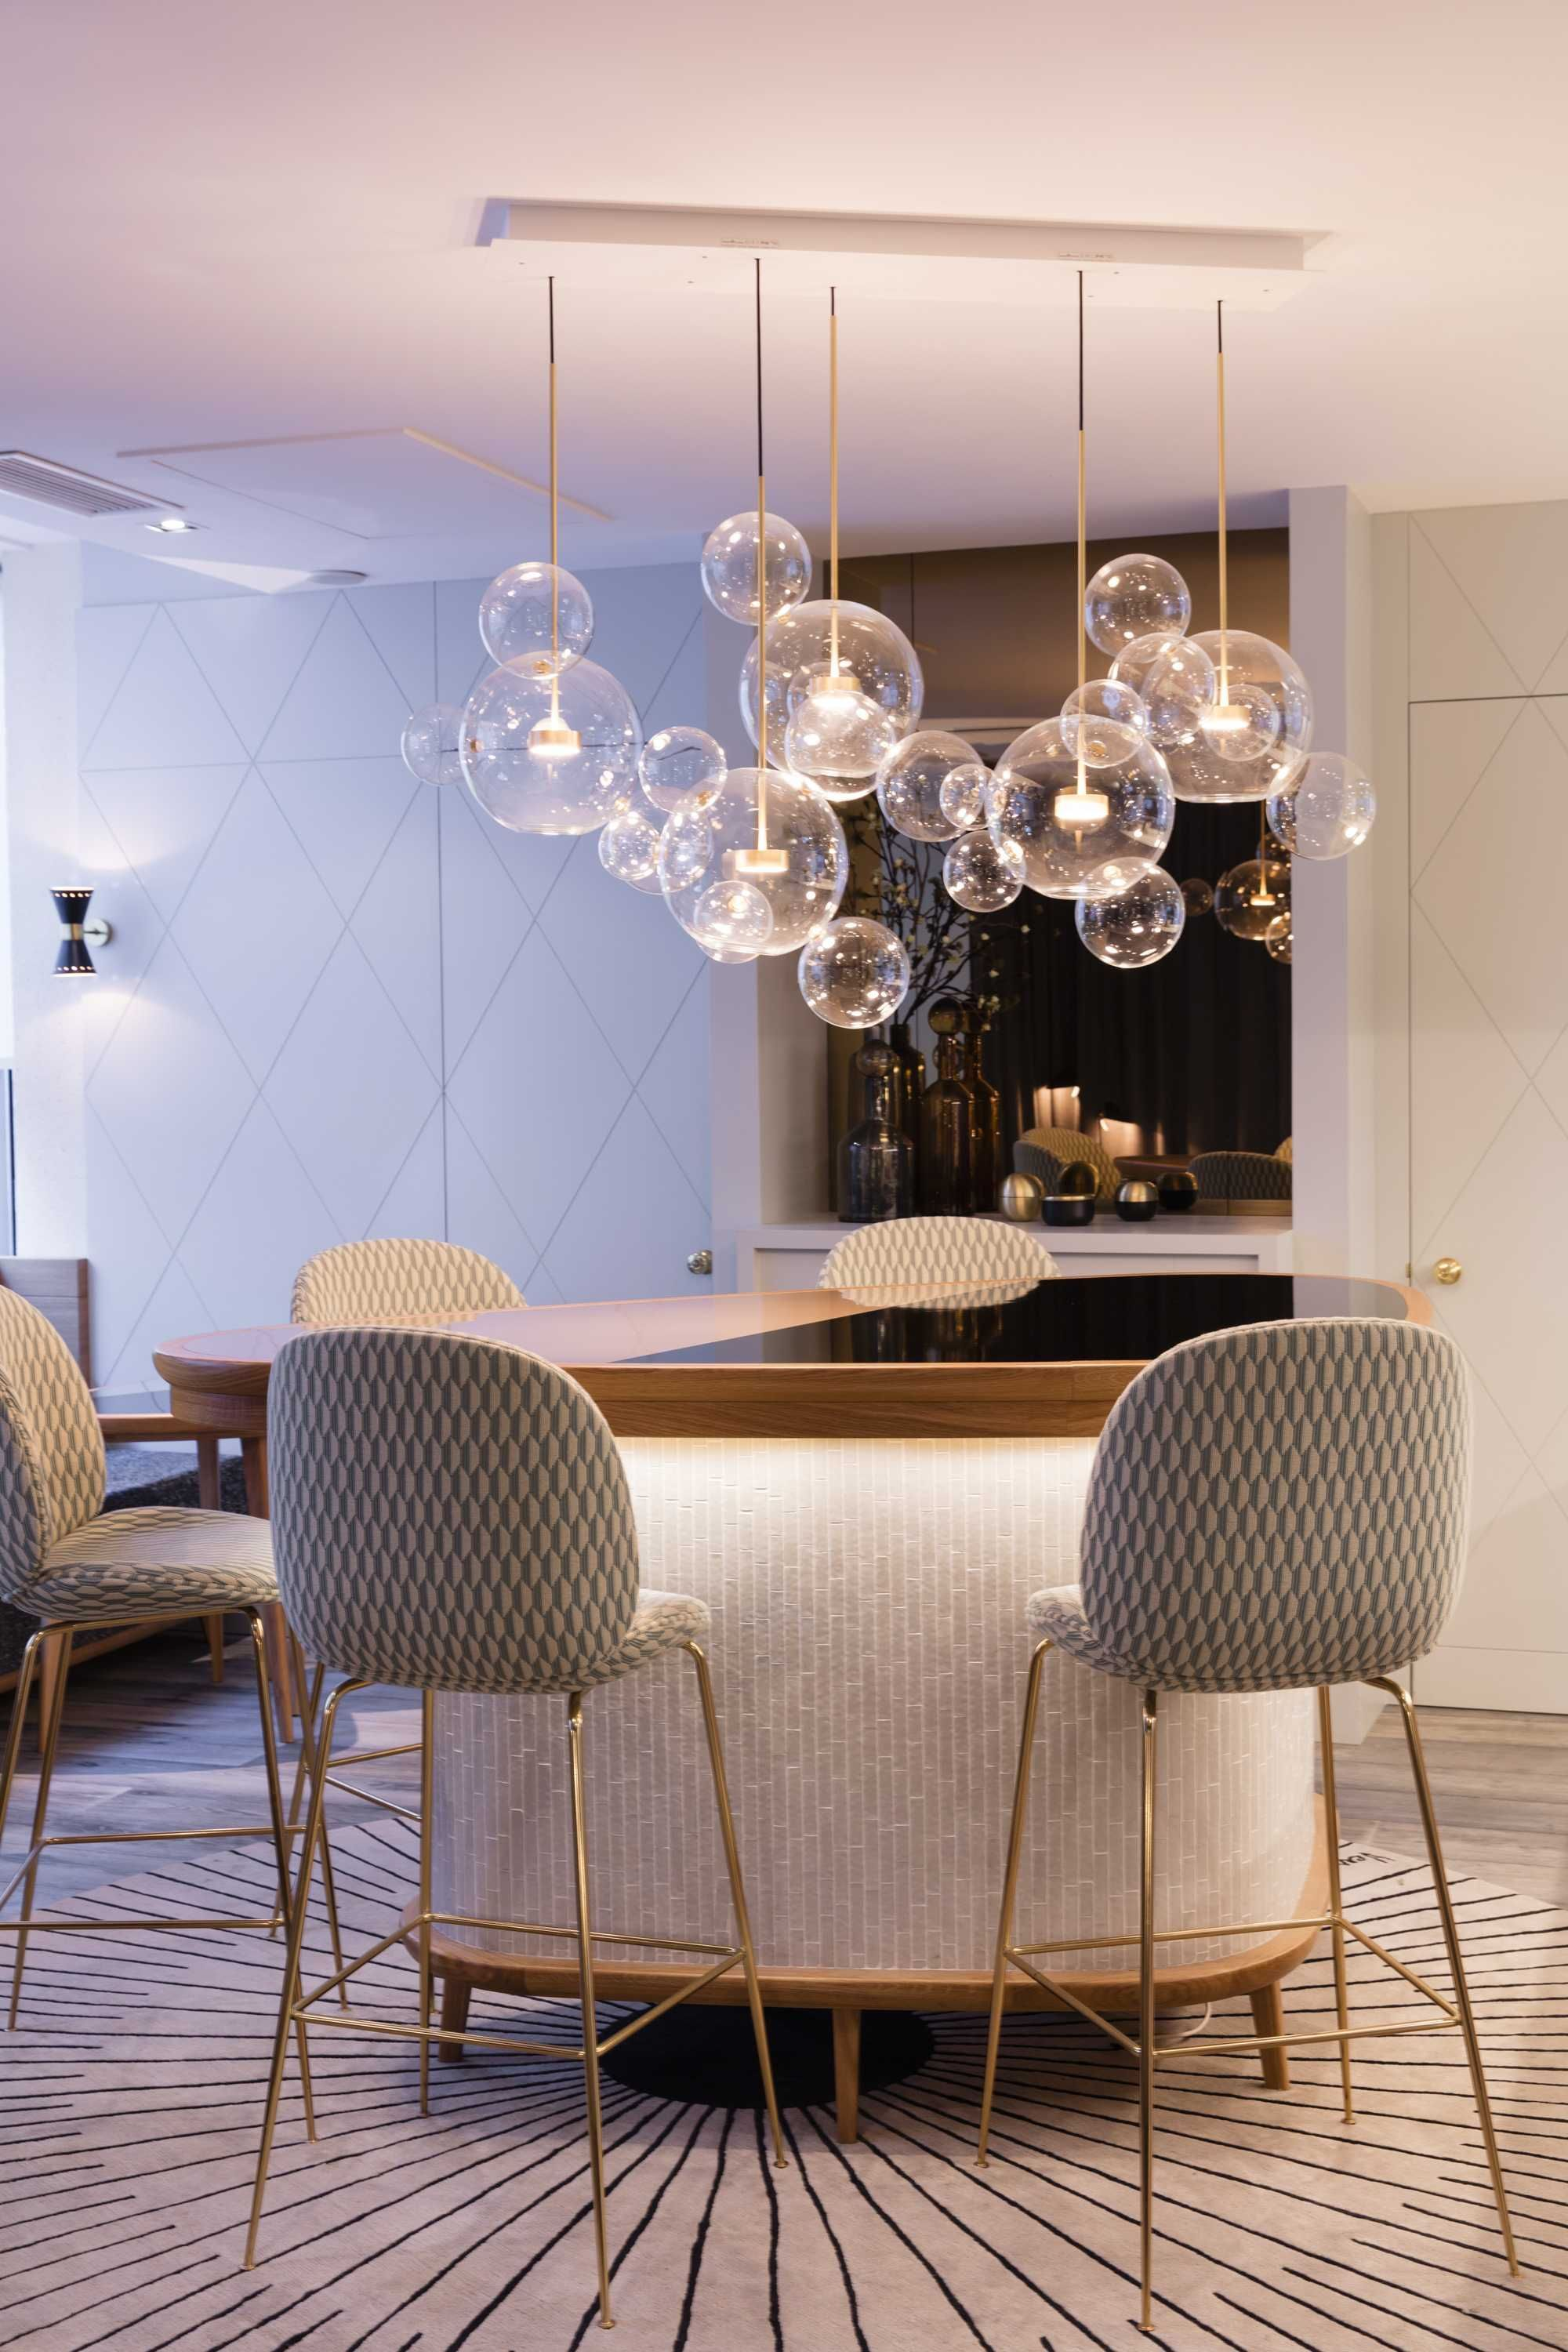 The Most Effective Chandelier Is The One With Adjustable Height When You Have A In 2020 Dining Room Chandelier Modern Modern Chandelier Dining Dining Room Chandelier